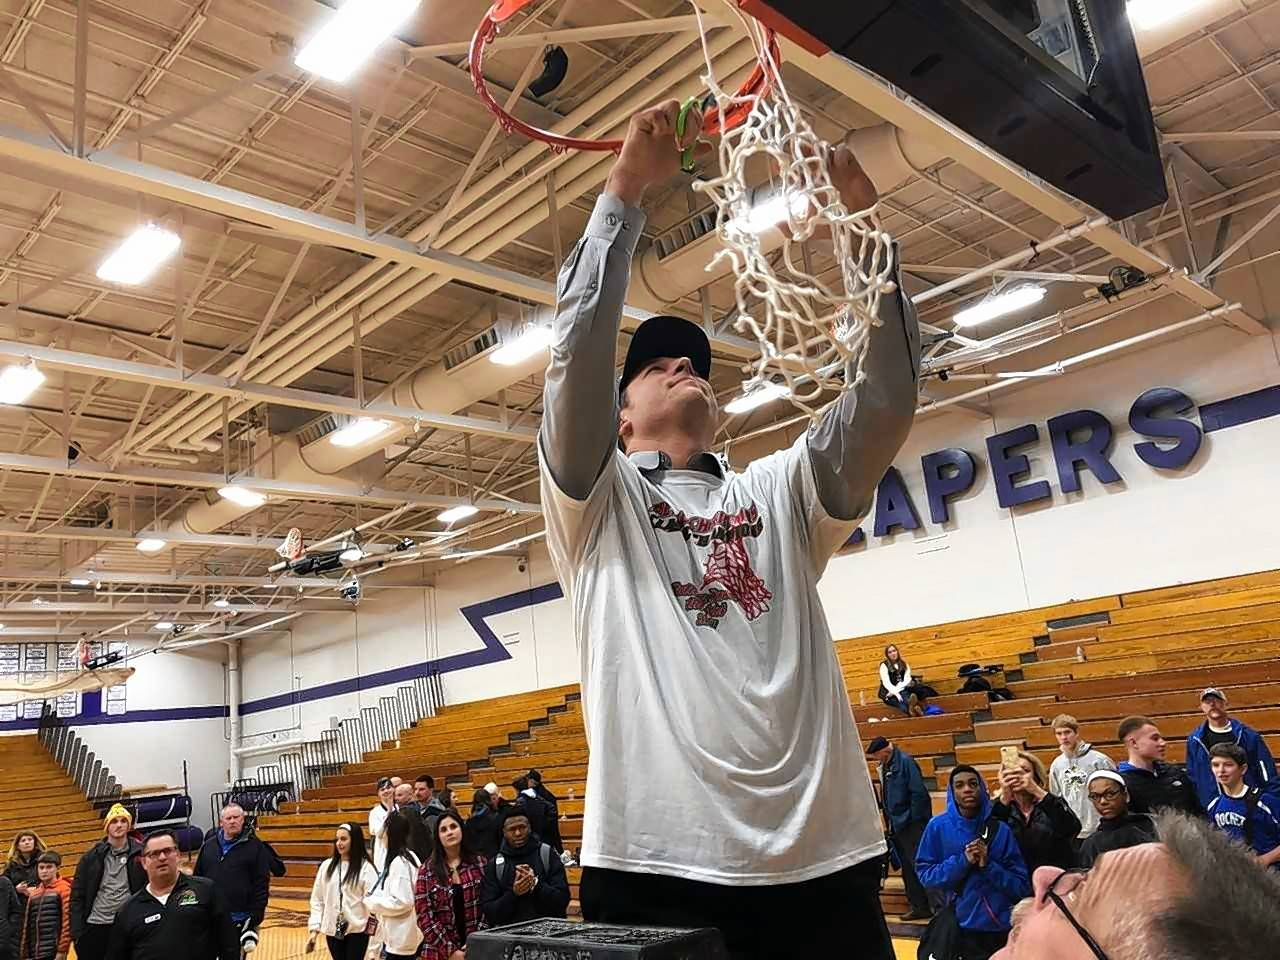 Burlington Central boys basketball coach Brett Porto cuts down the net after the Rockets won the Plano Christmas Classic championship, 44-39 in overtime against Peoria Notre Dame Saturday night.